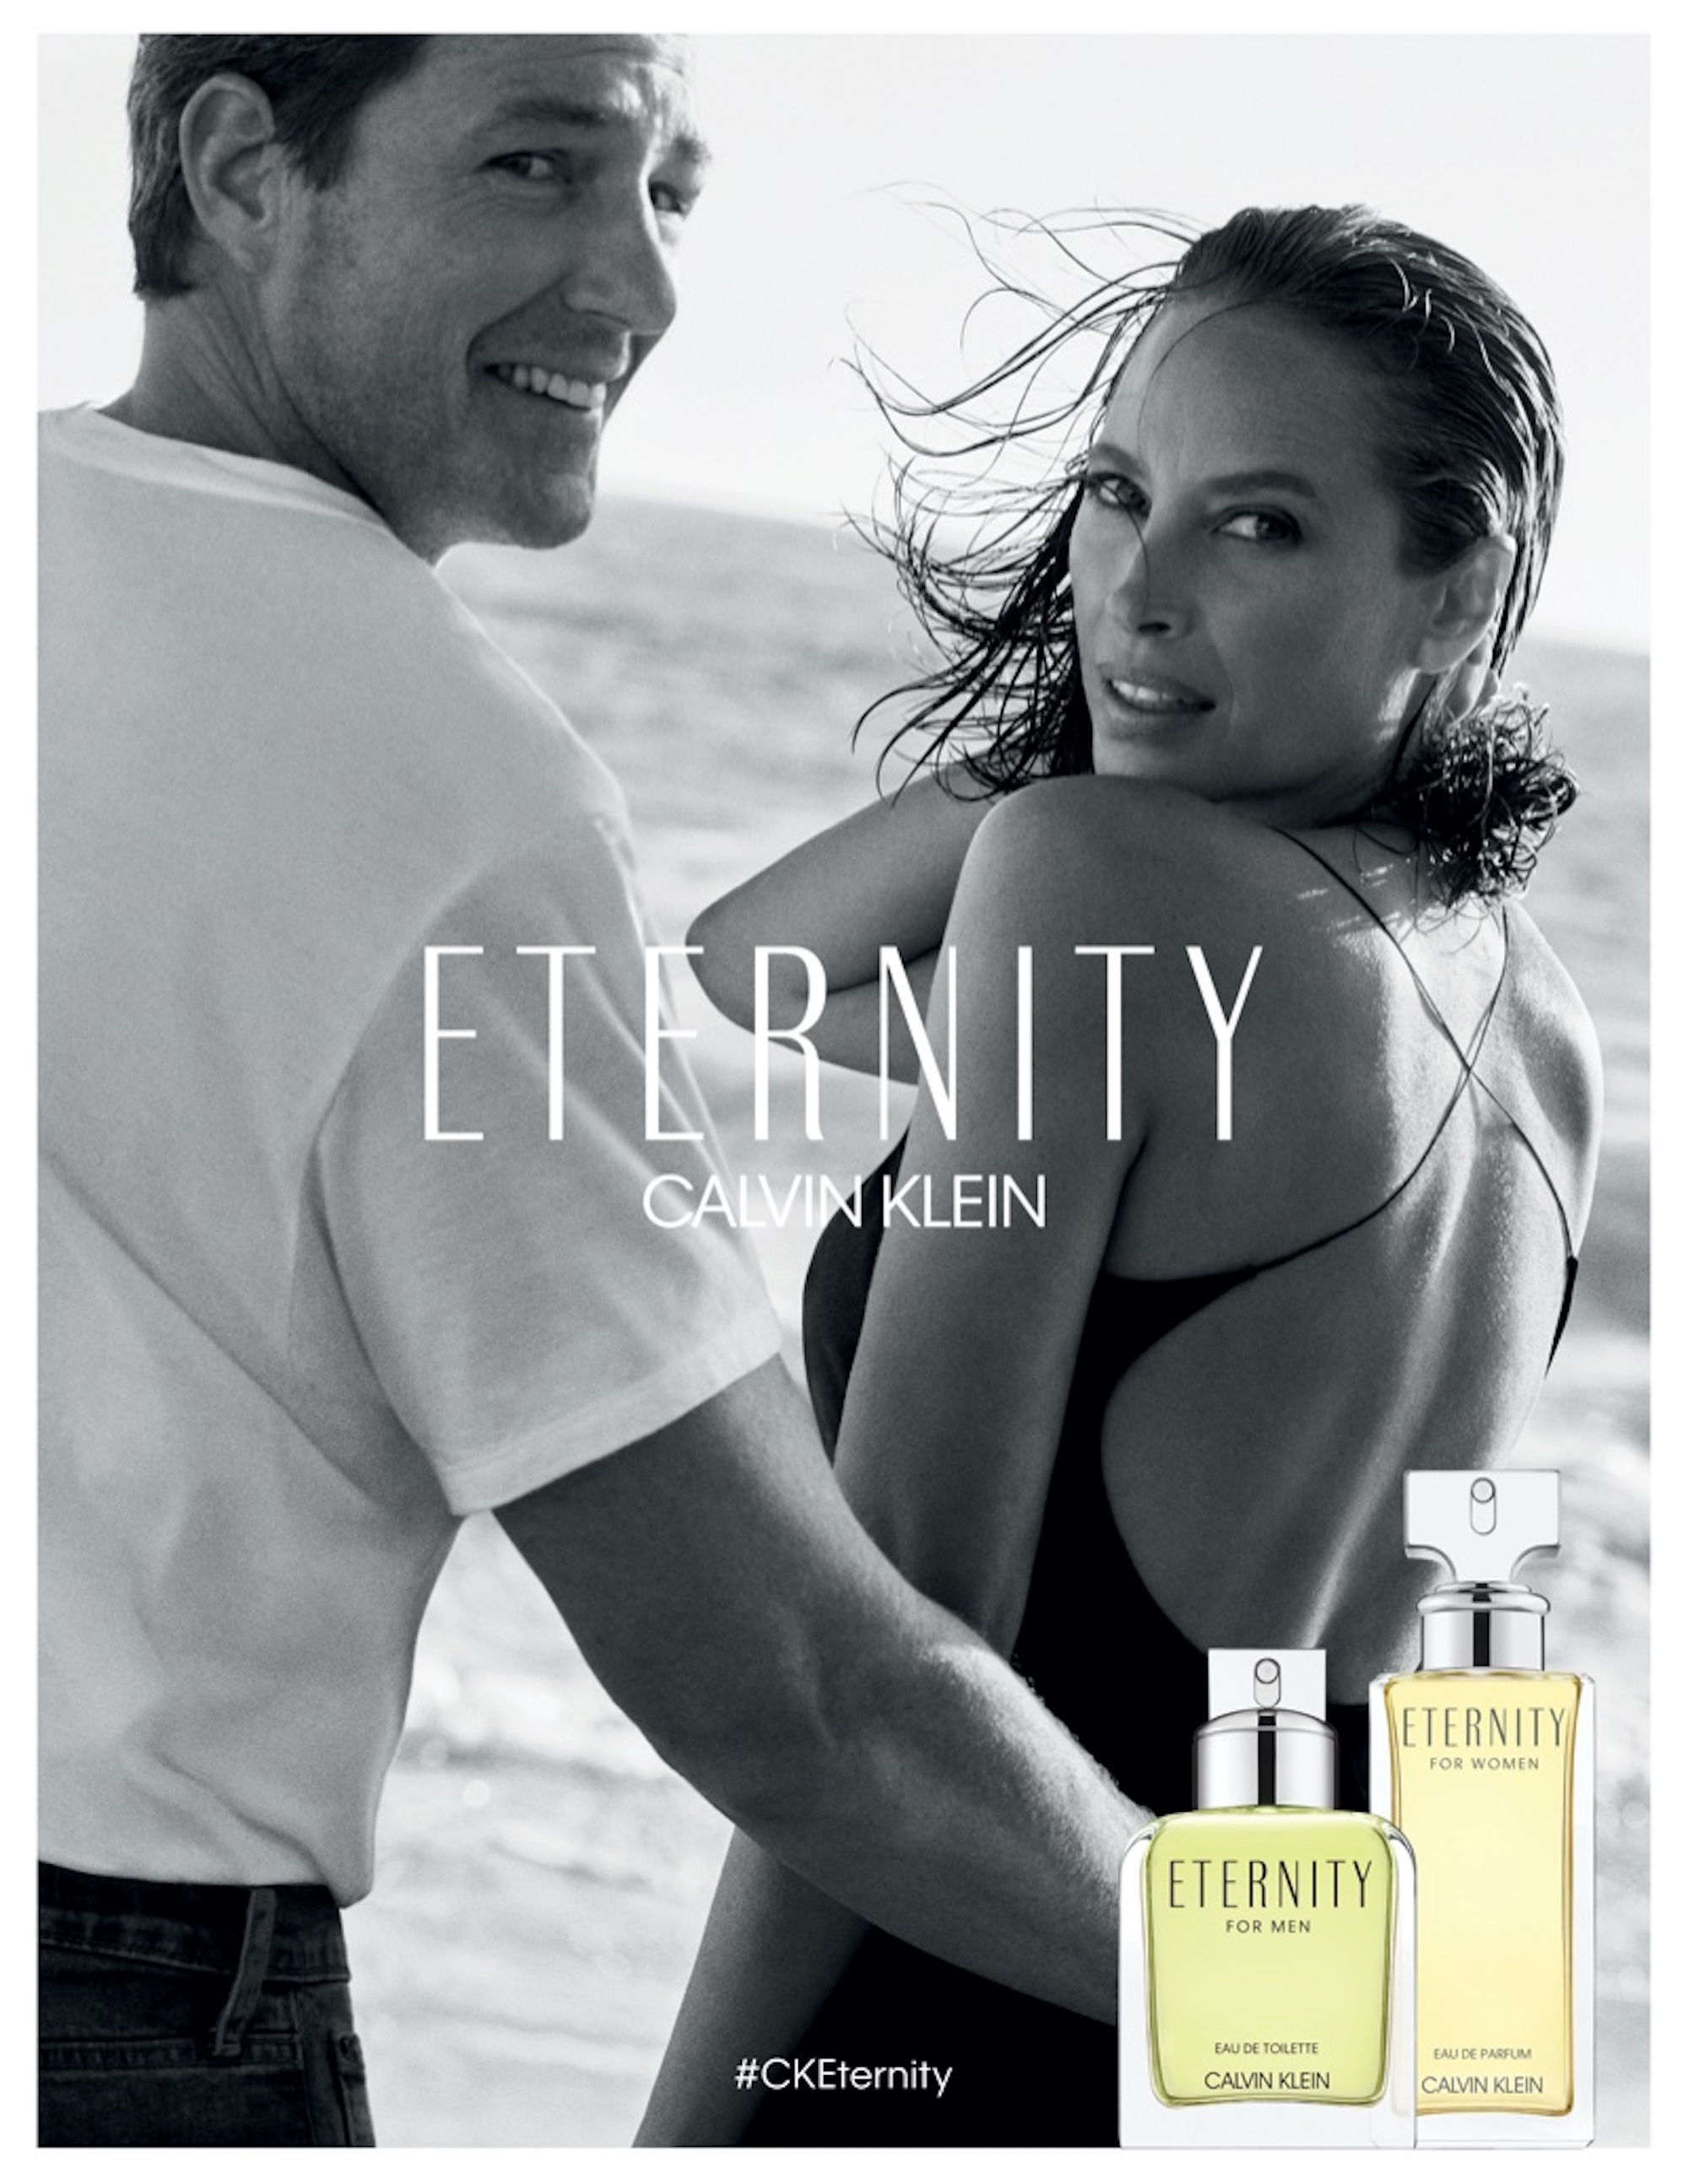 Calvin Klein Eternity Fragrance